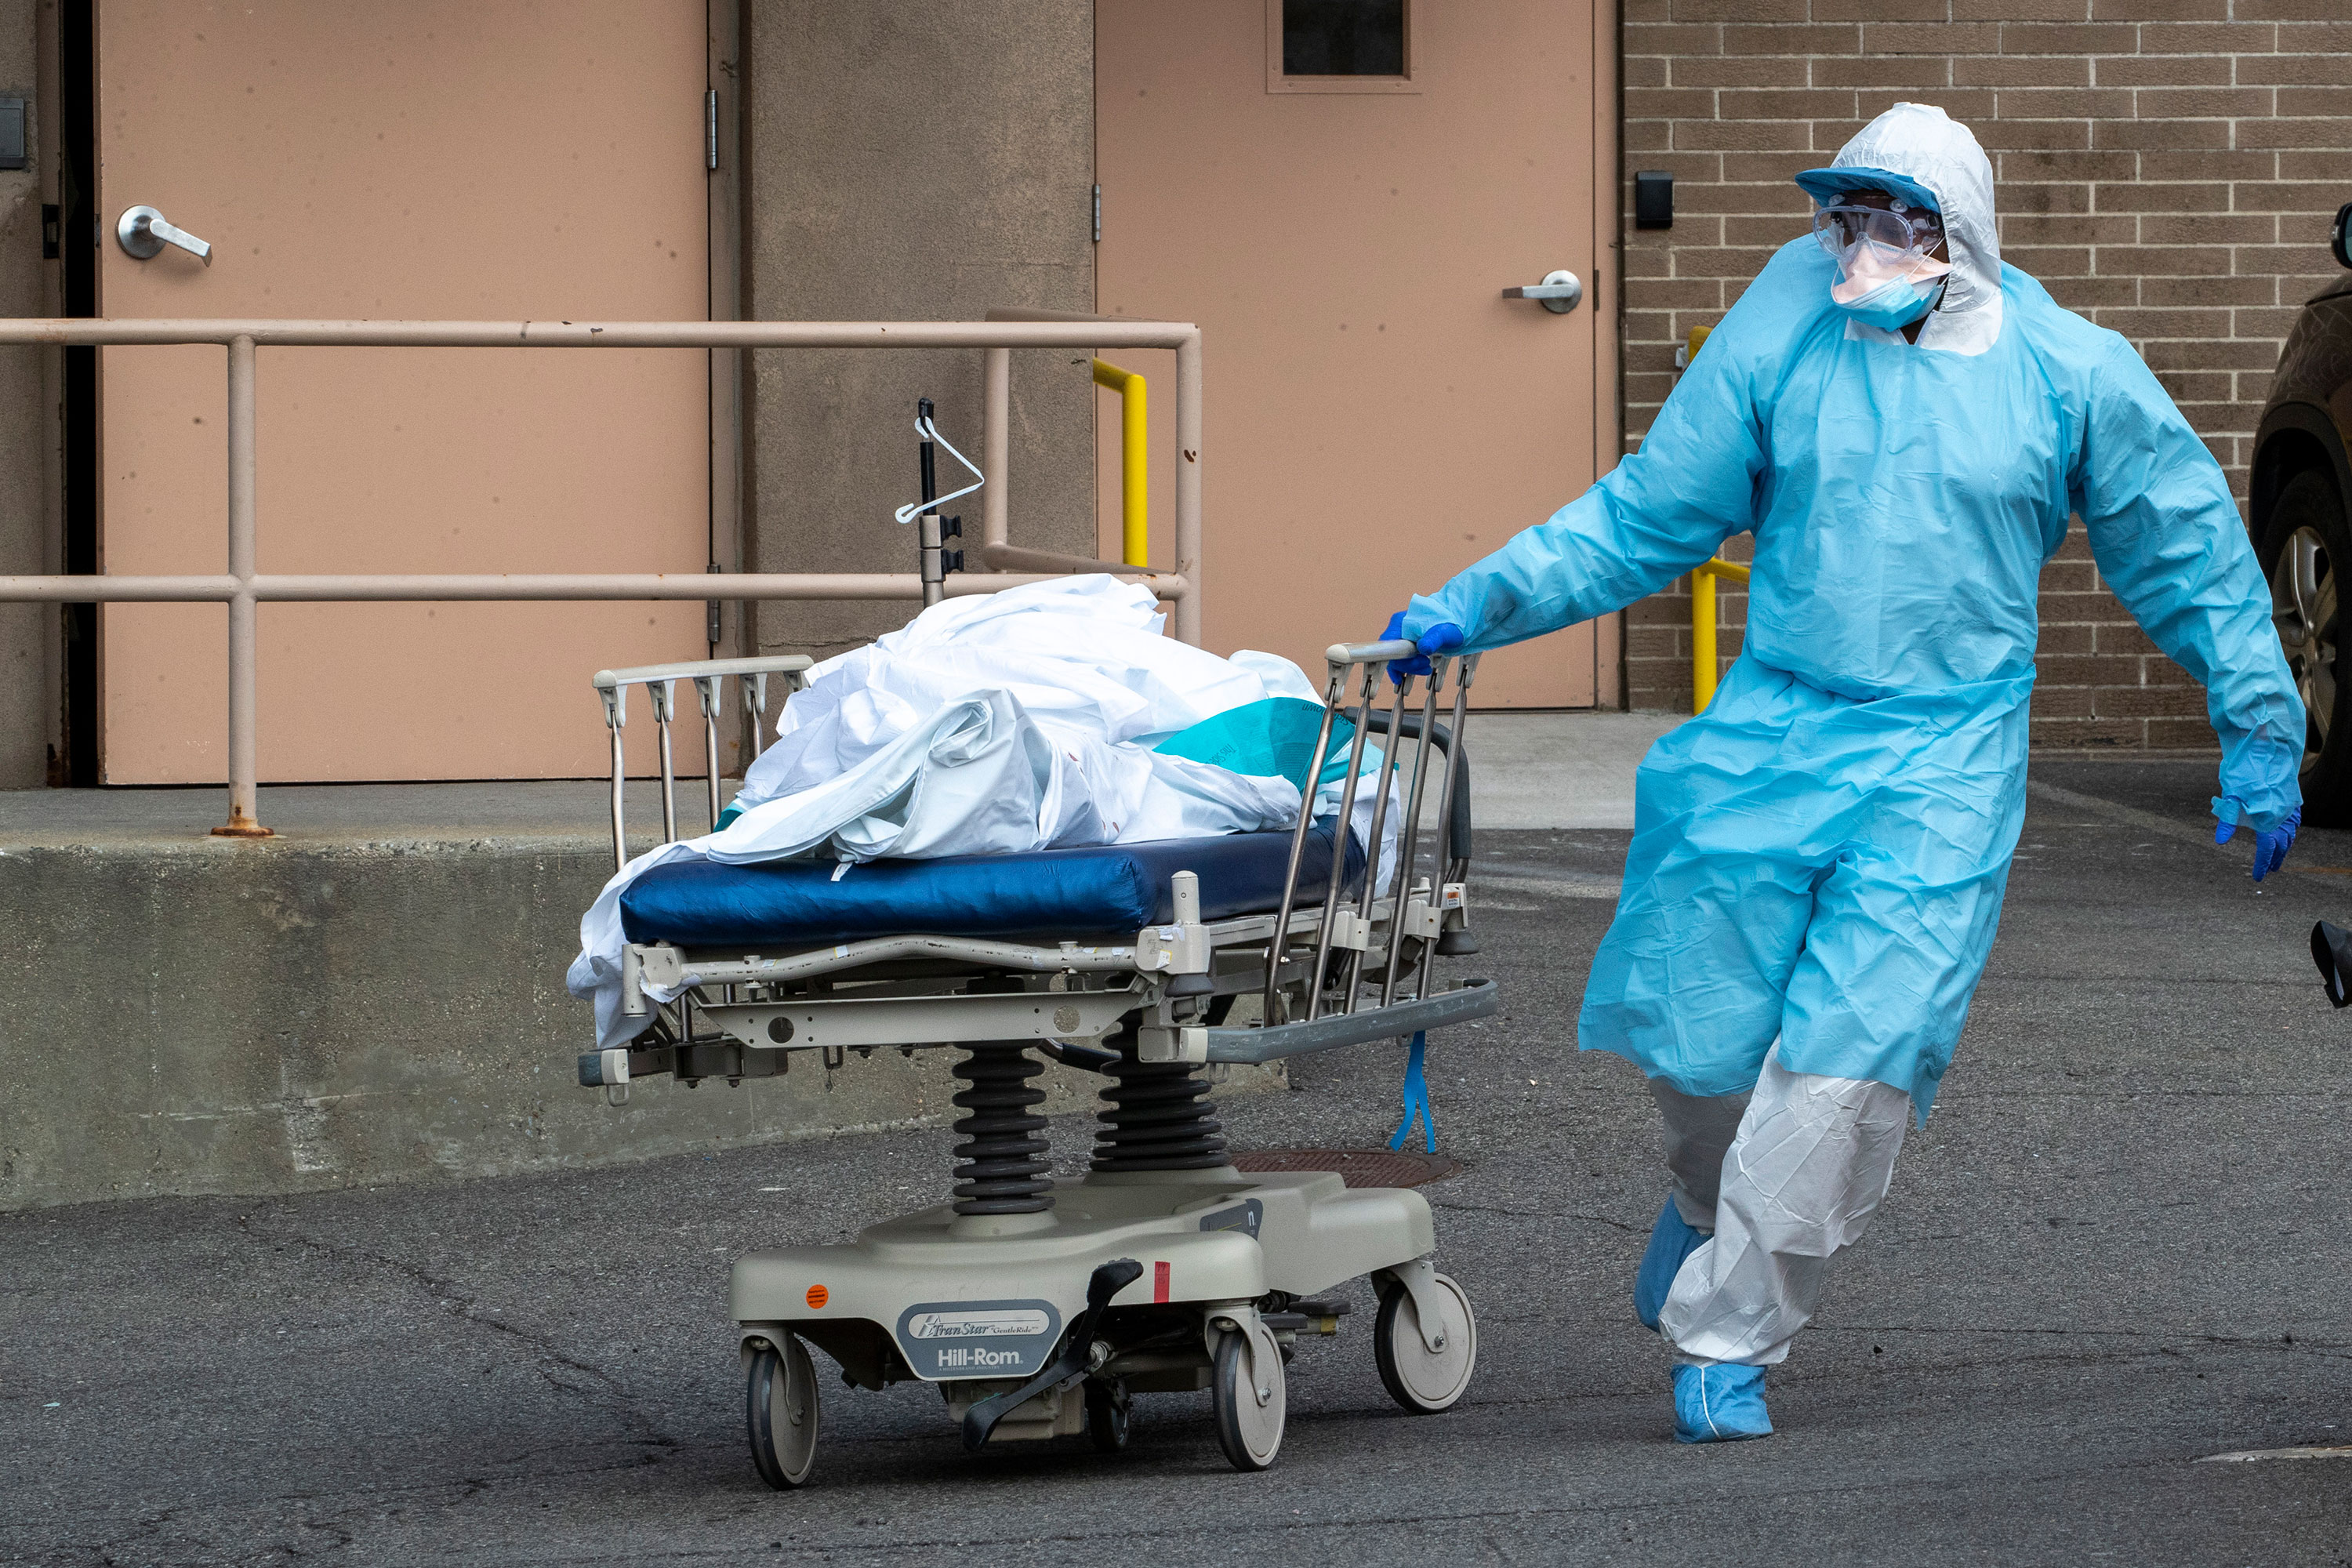 Medical personnel remove a body from theWyckoff Heights Medical Center to refrigerated containers parked outside, on April 2 in Brooklyn, New York.